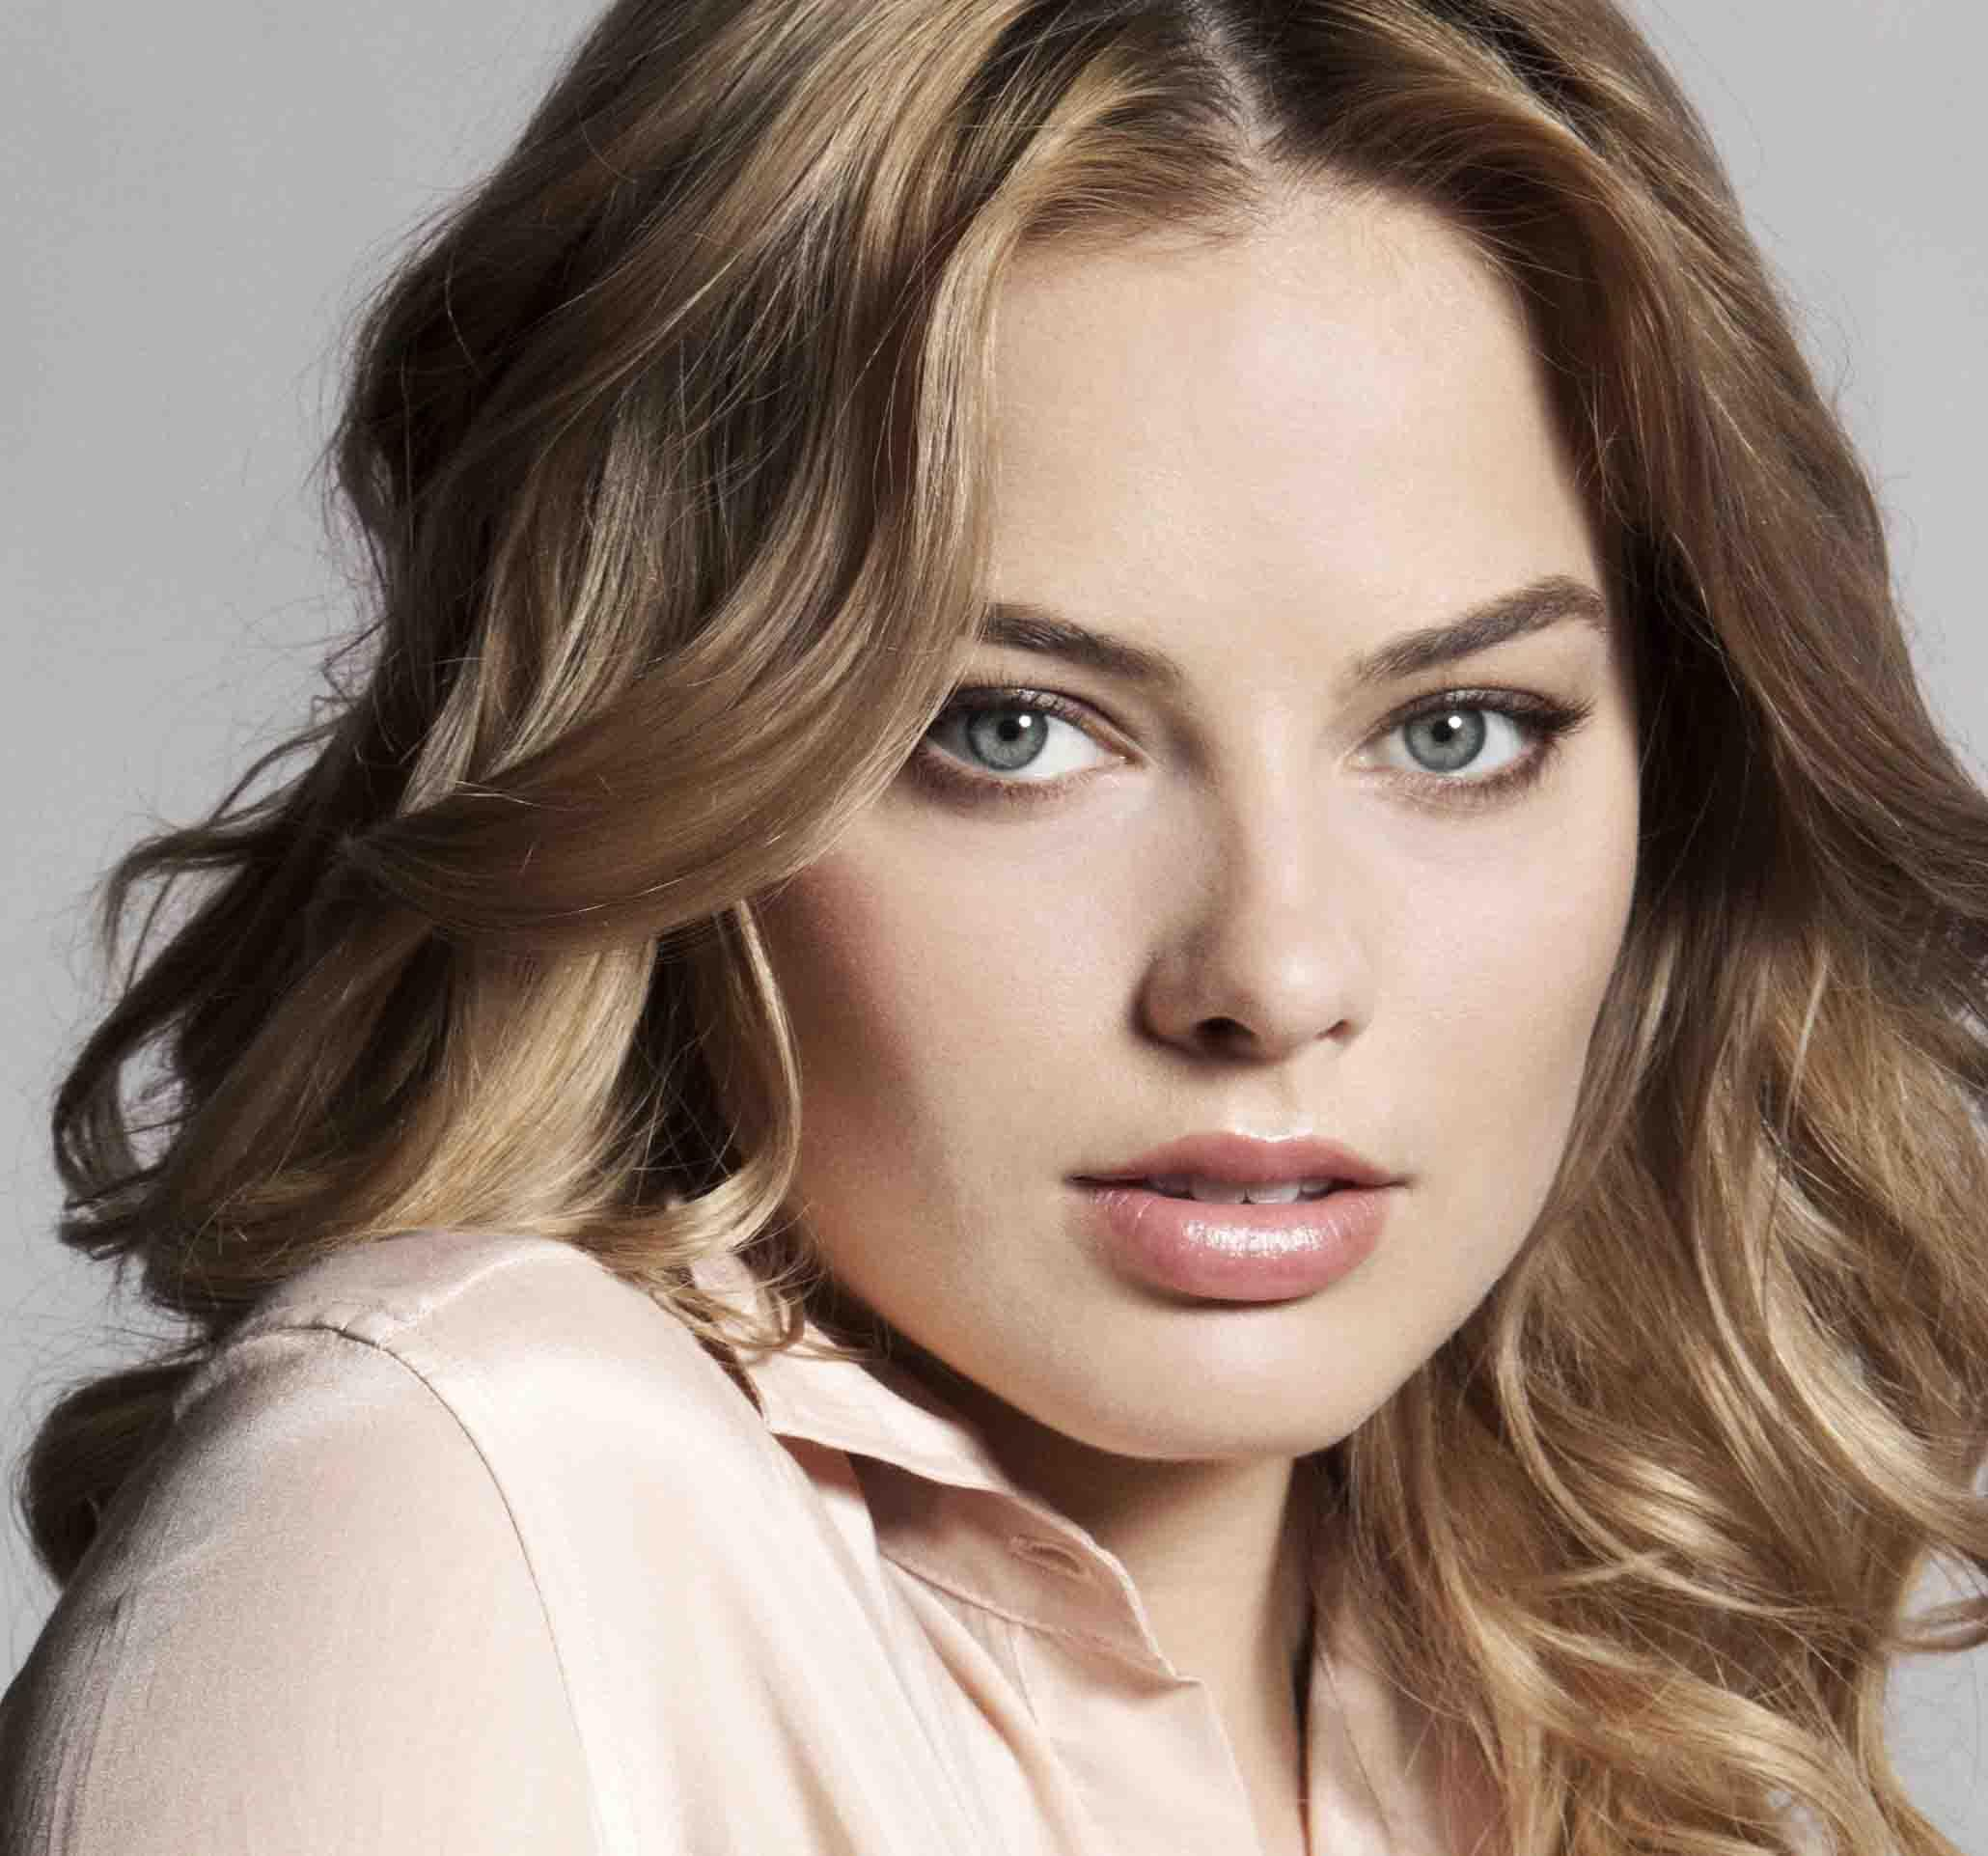 Latest Margot Robbie Wallpapers Hd For Android Apk Download